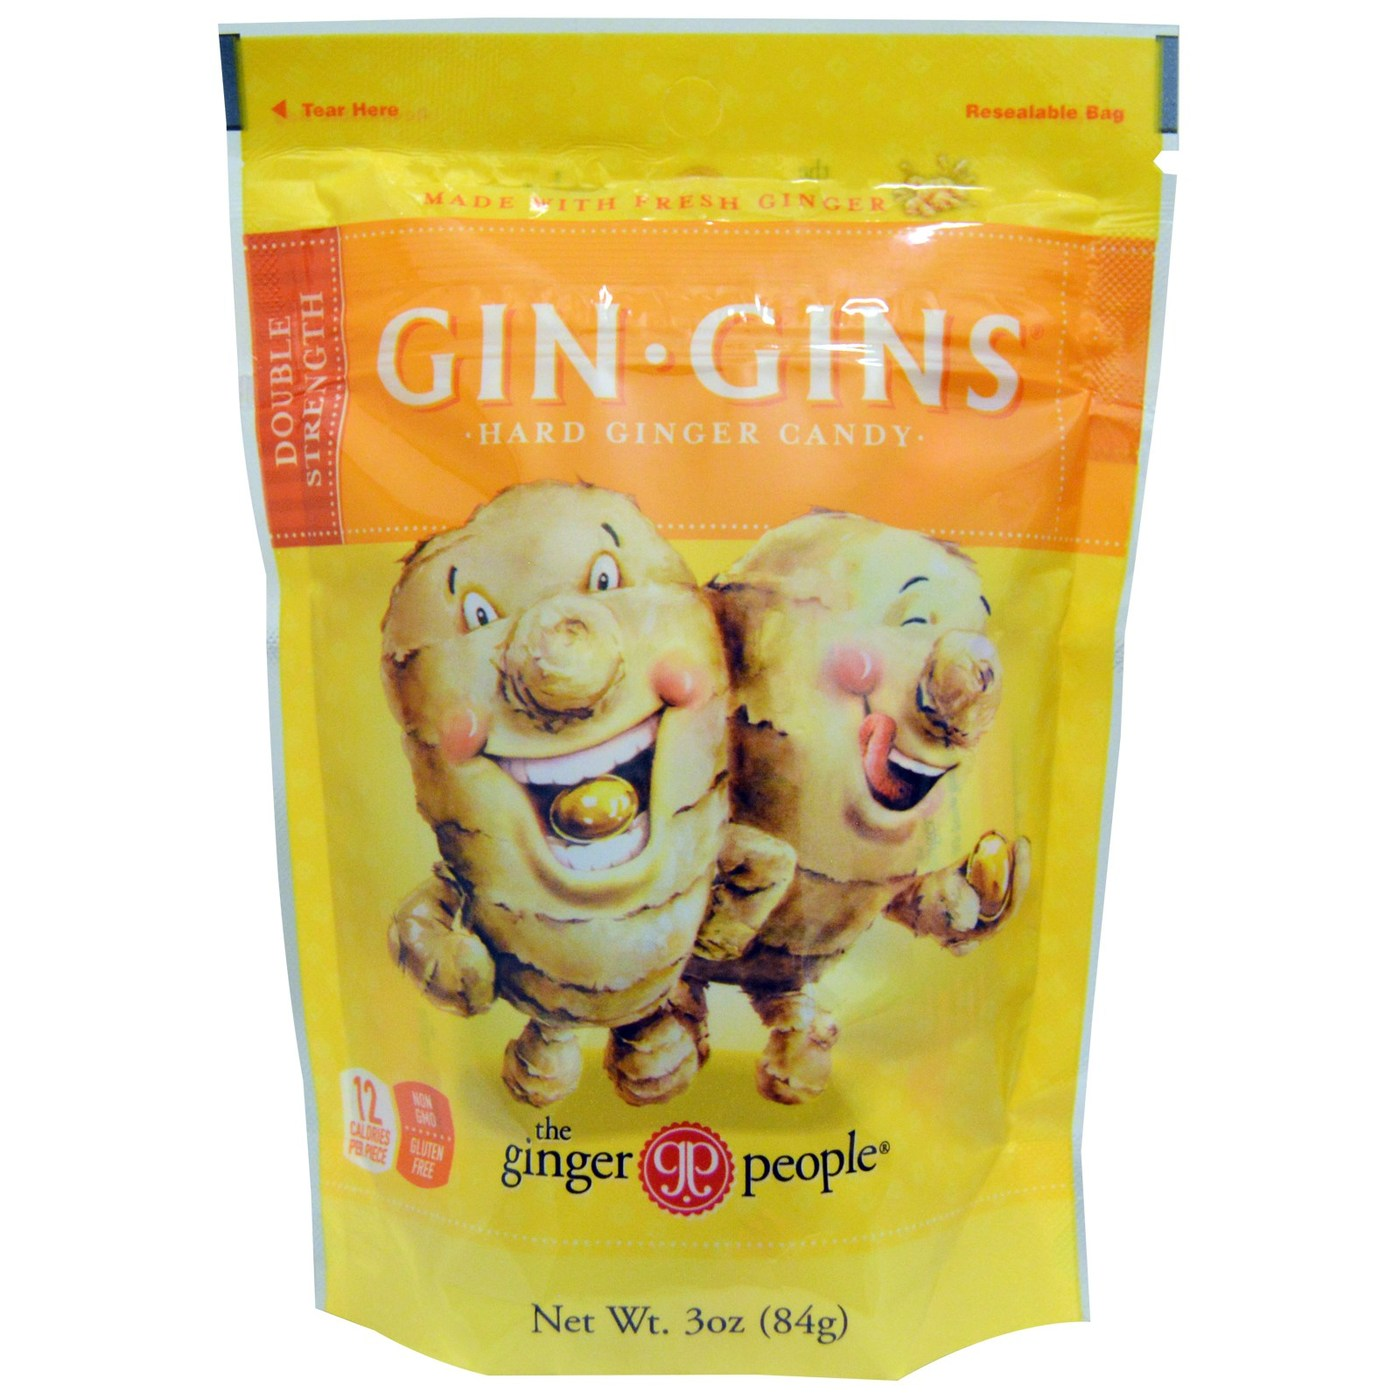 Ginger People Gin-Gins Hard Ginger Candy – 24 – 3 oz bags